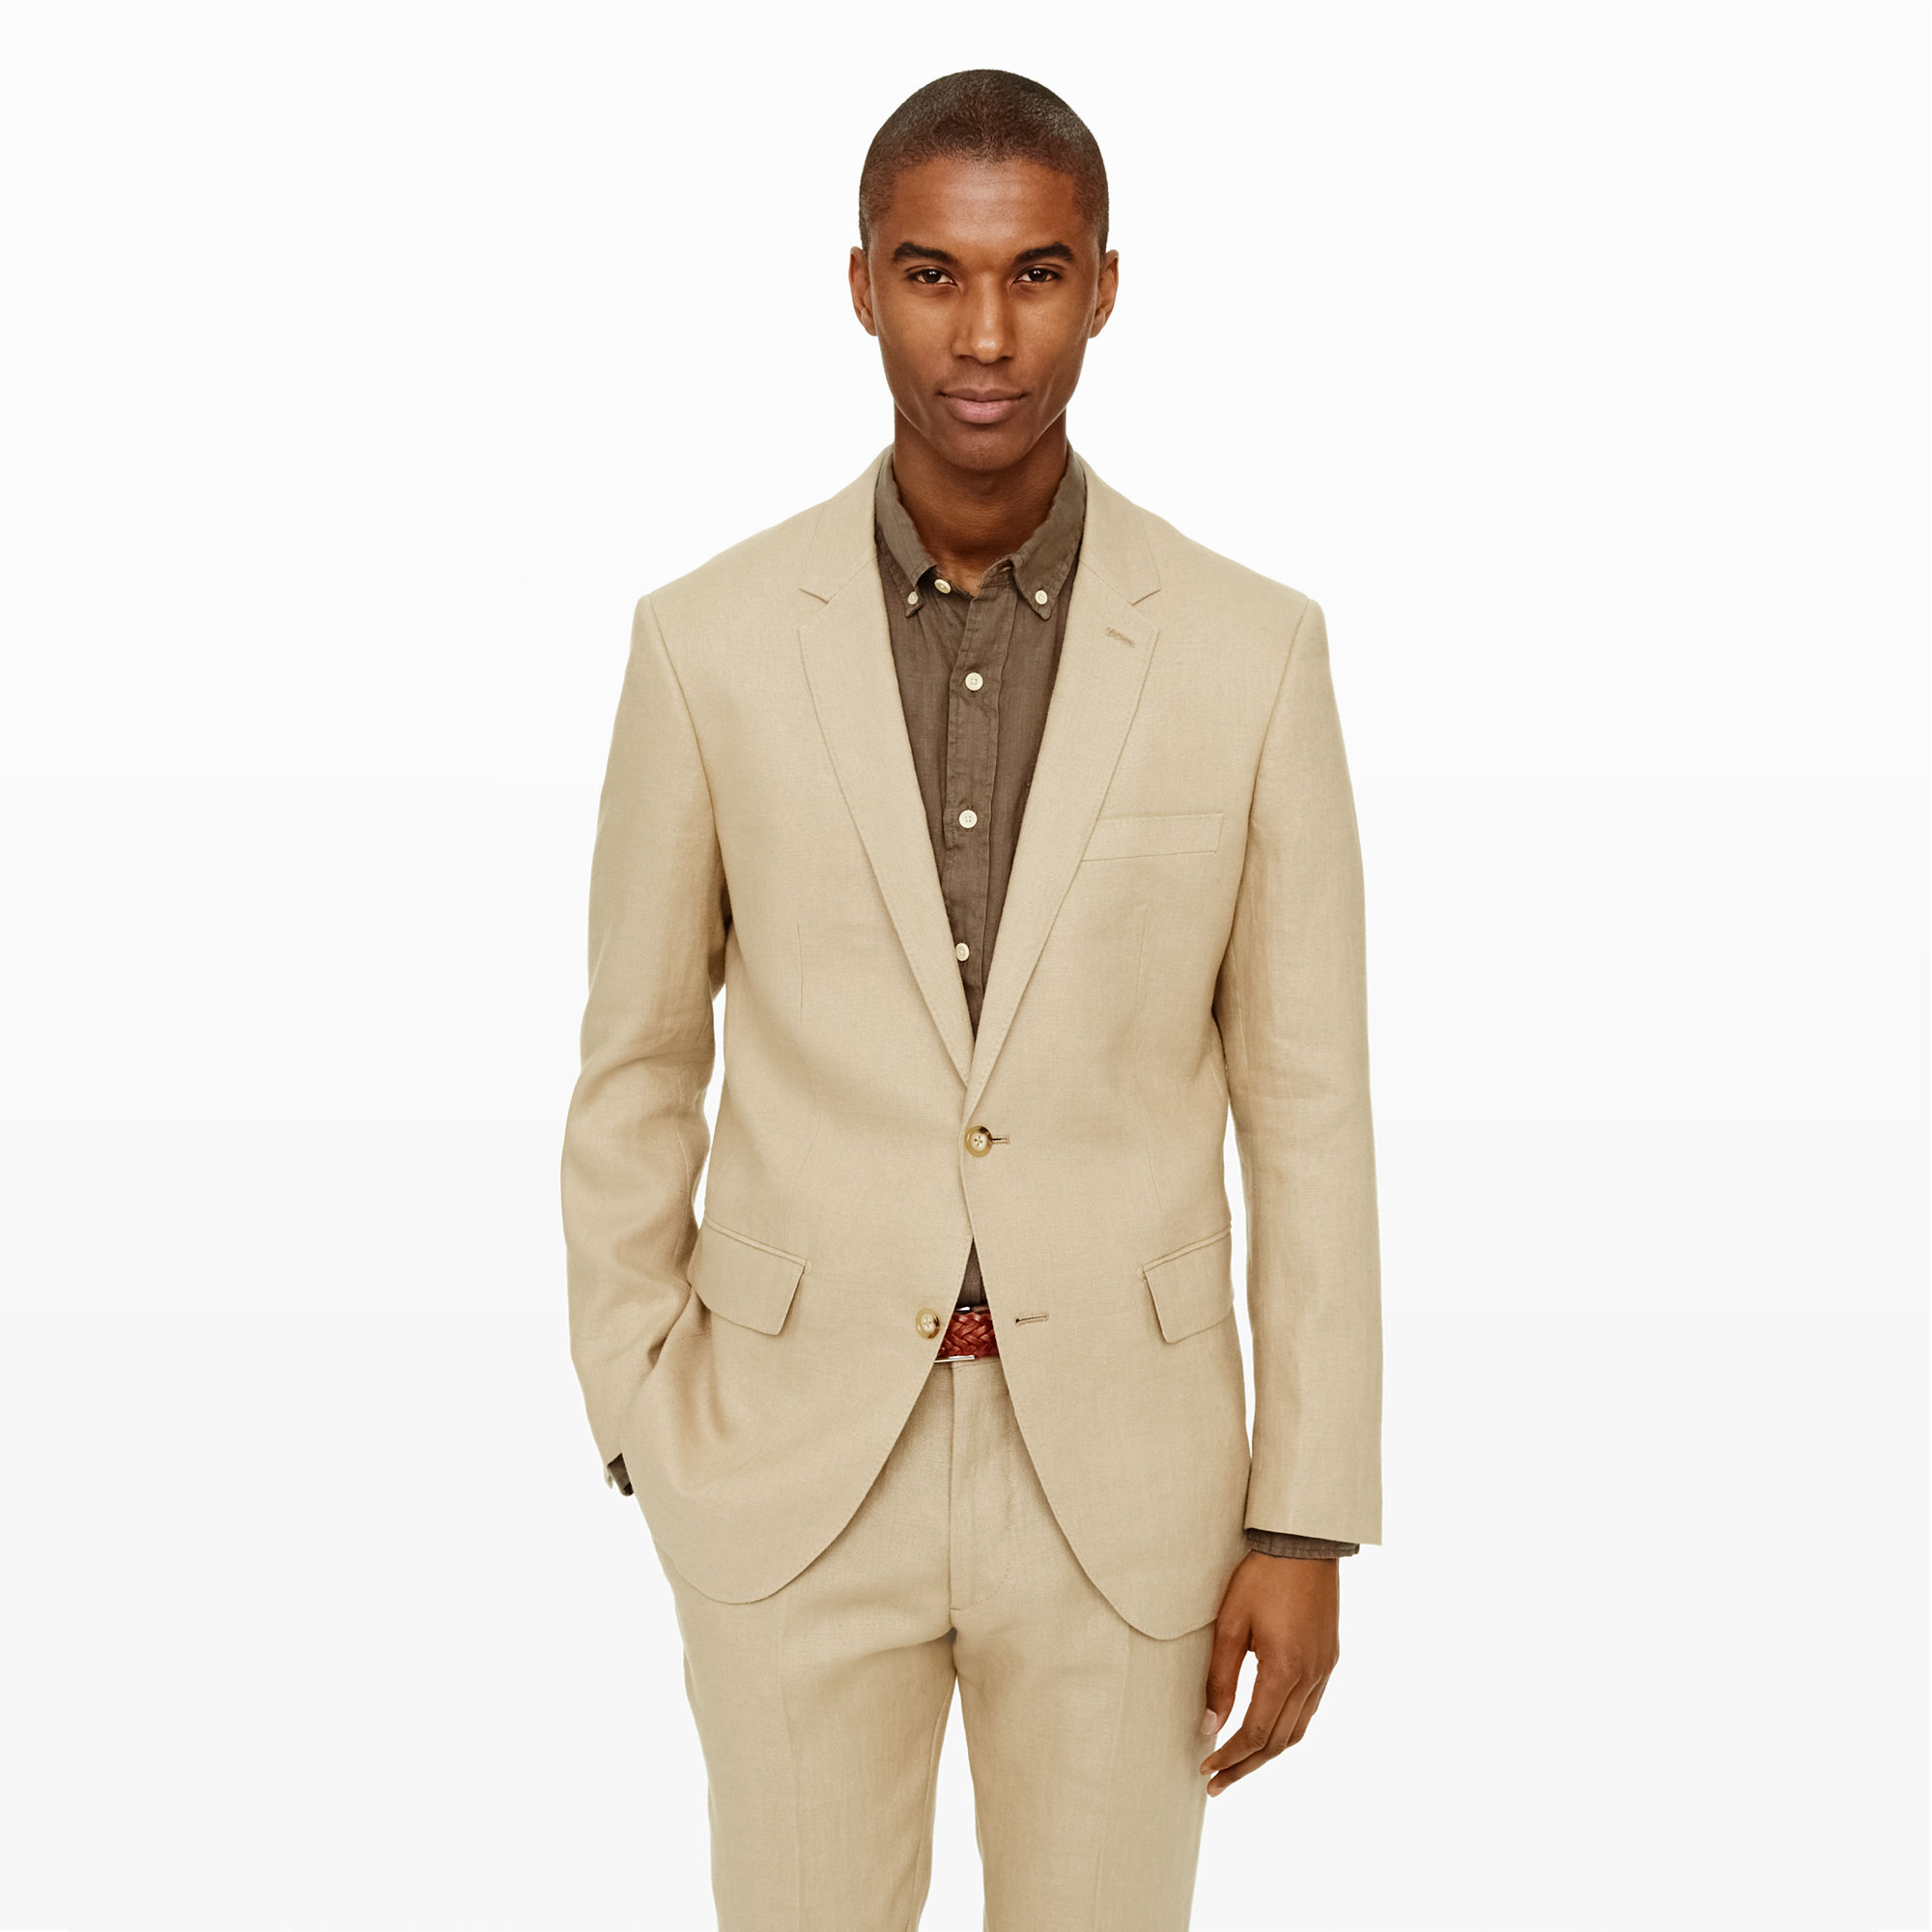 65f4b445ac94 Club Monaco New Grant Linen Suit Jacket in Natural for Men - Lyst